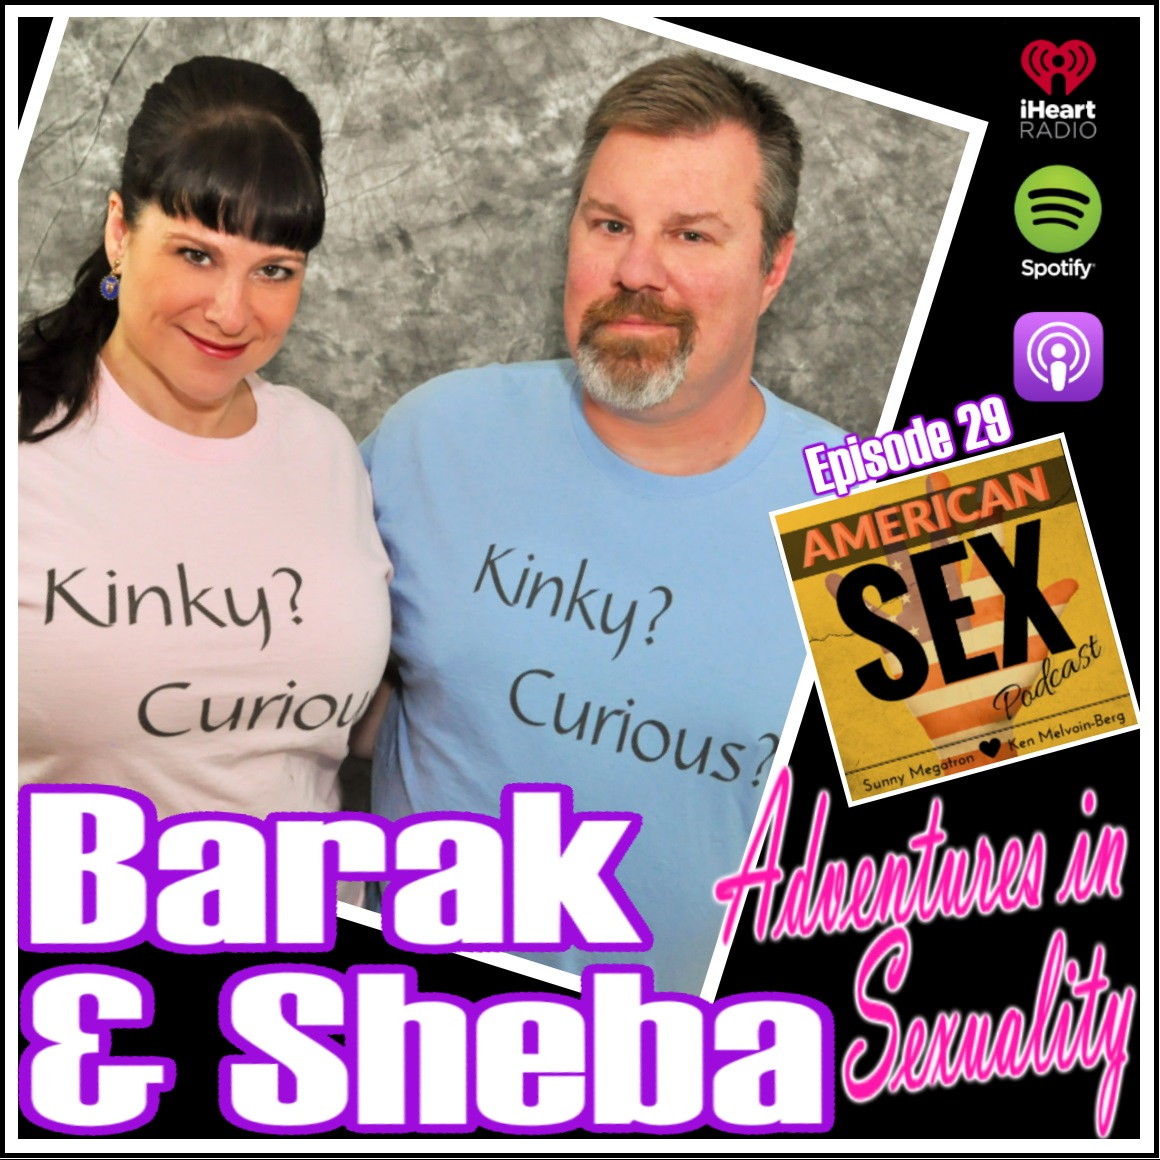 Barak and Sheba Podcast Adventures in Sexuality